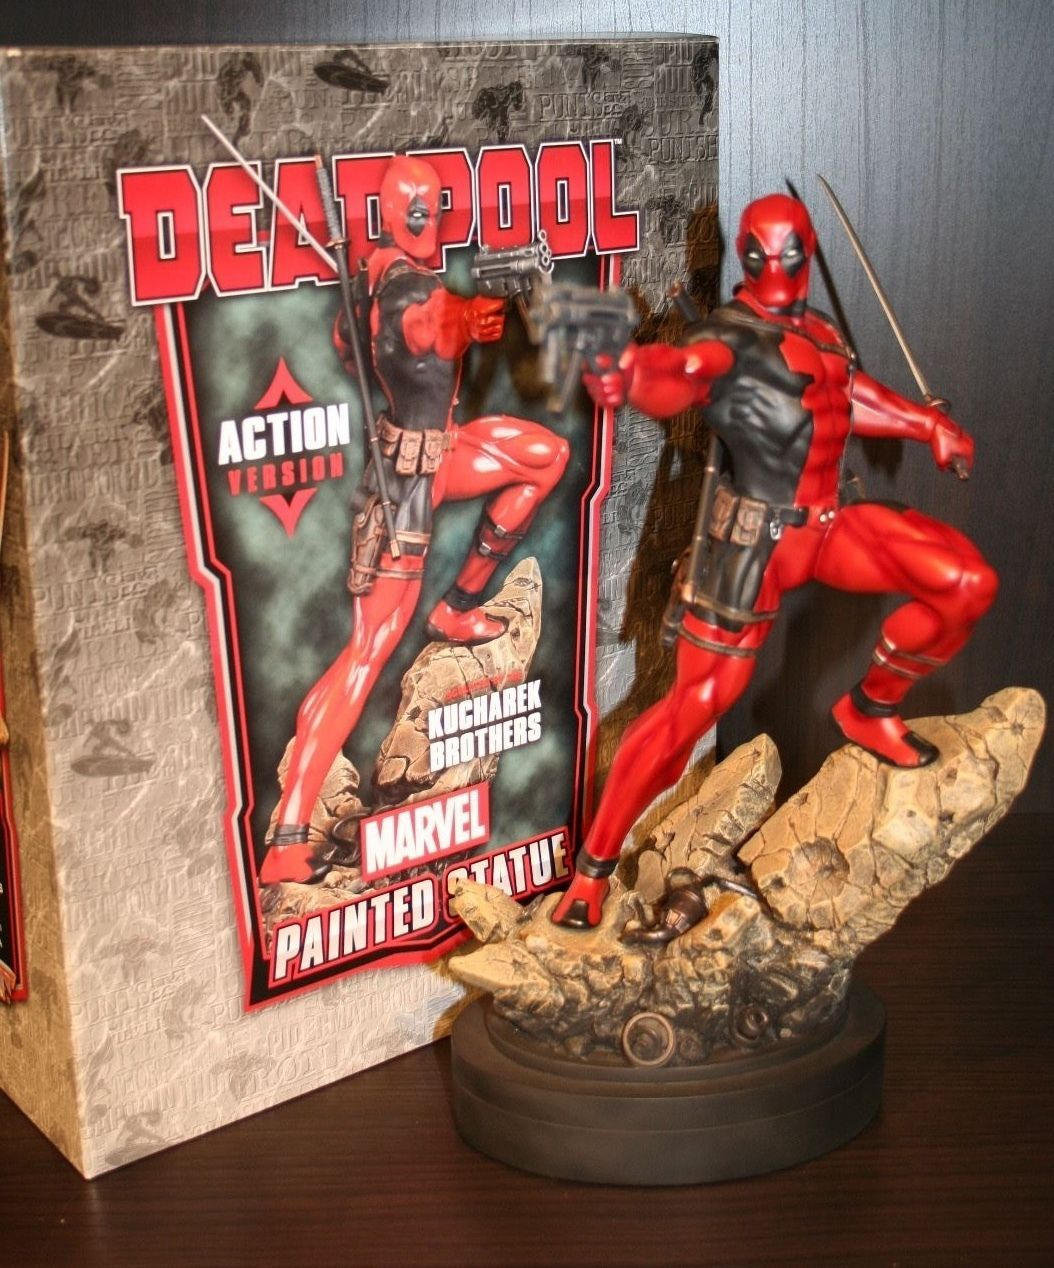 Deadpool Action statue. Designed and Sculpted by the Kucharek Brothers.